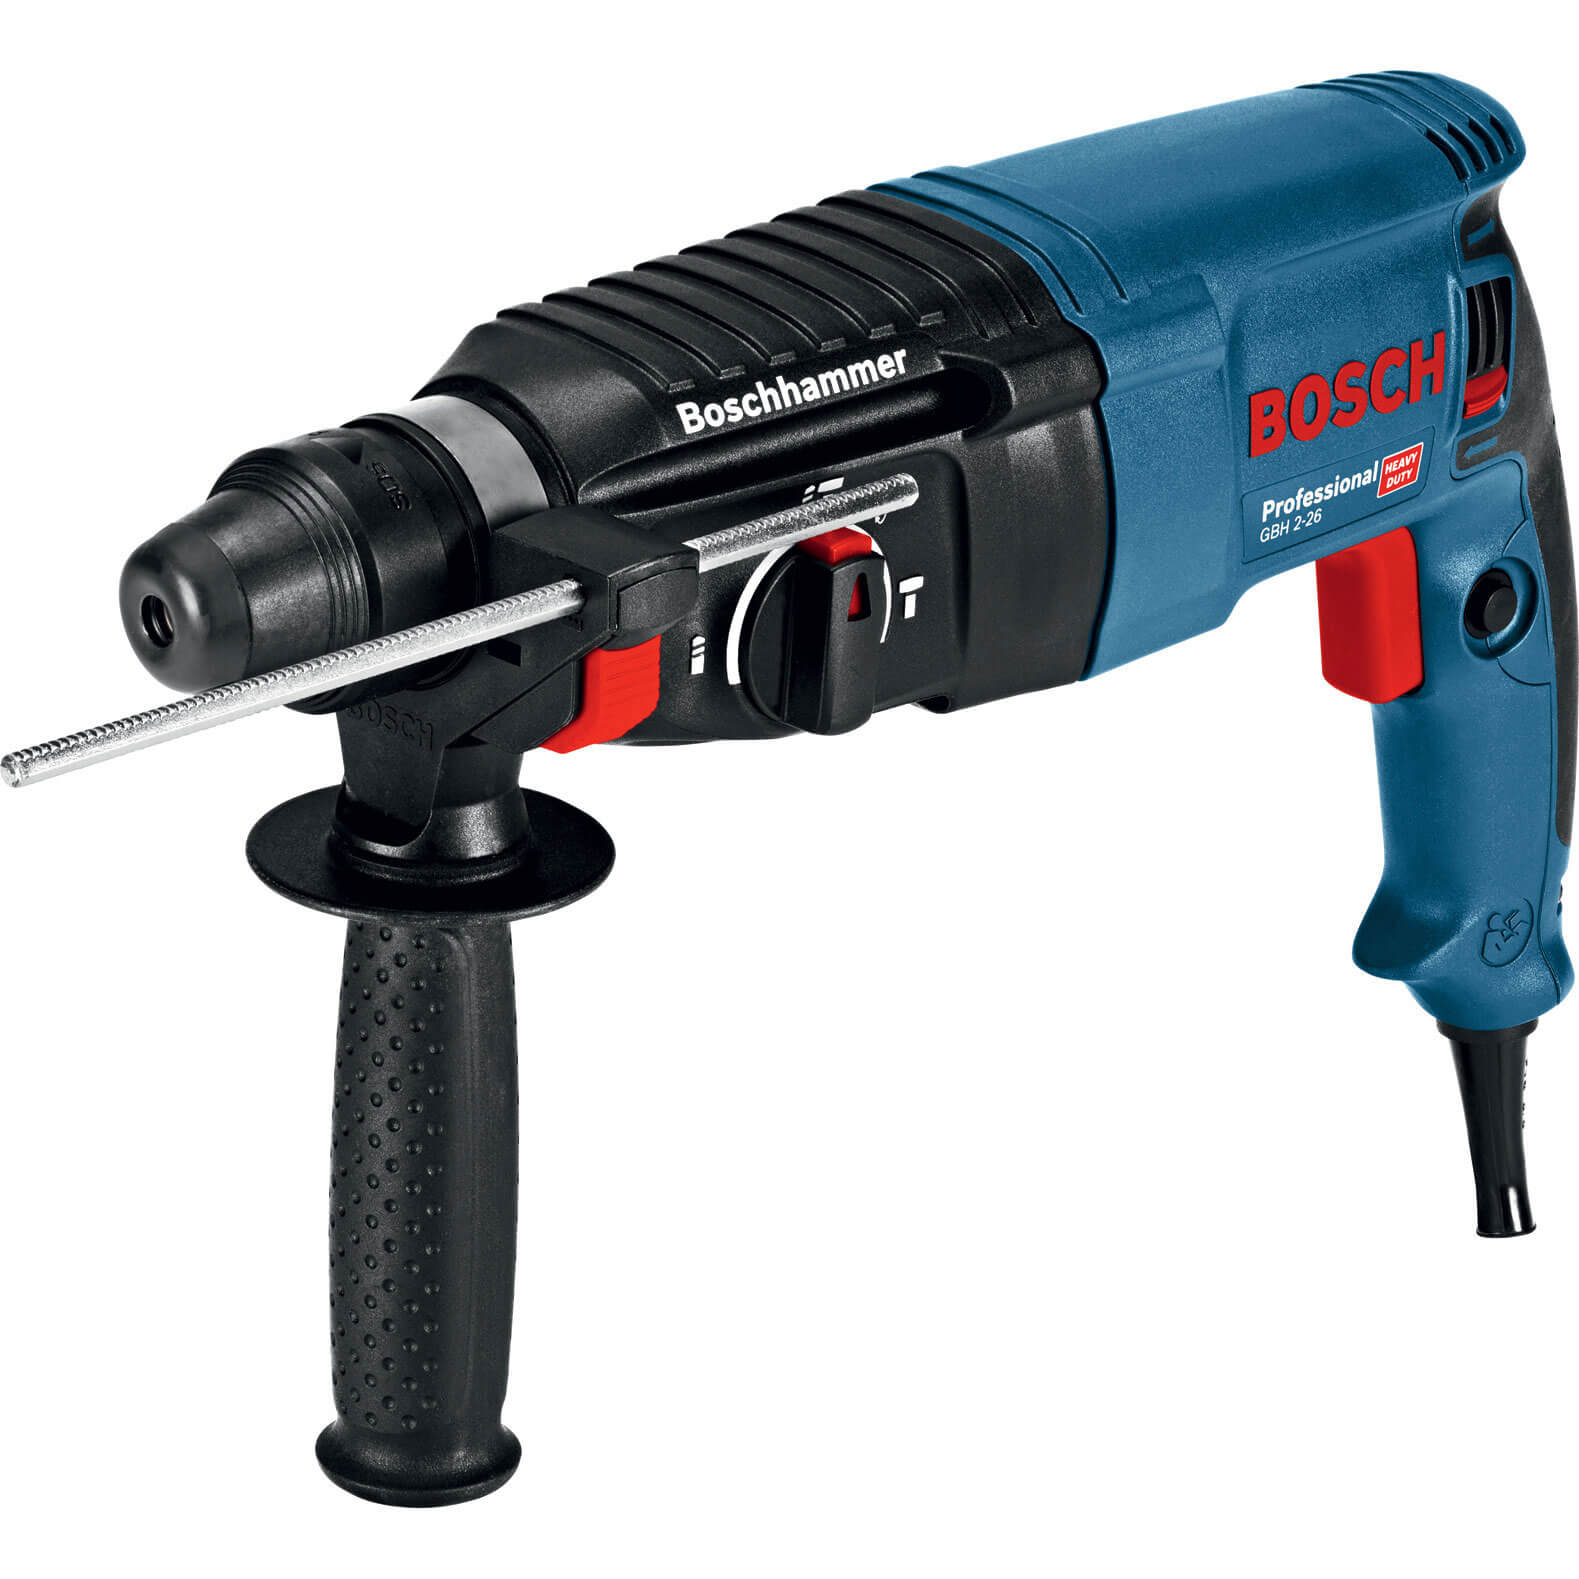 bosch gbh 2 26 sds plus 3 mode hammer drill. Black Bedroom Furniture Sets. Home Design Ideas